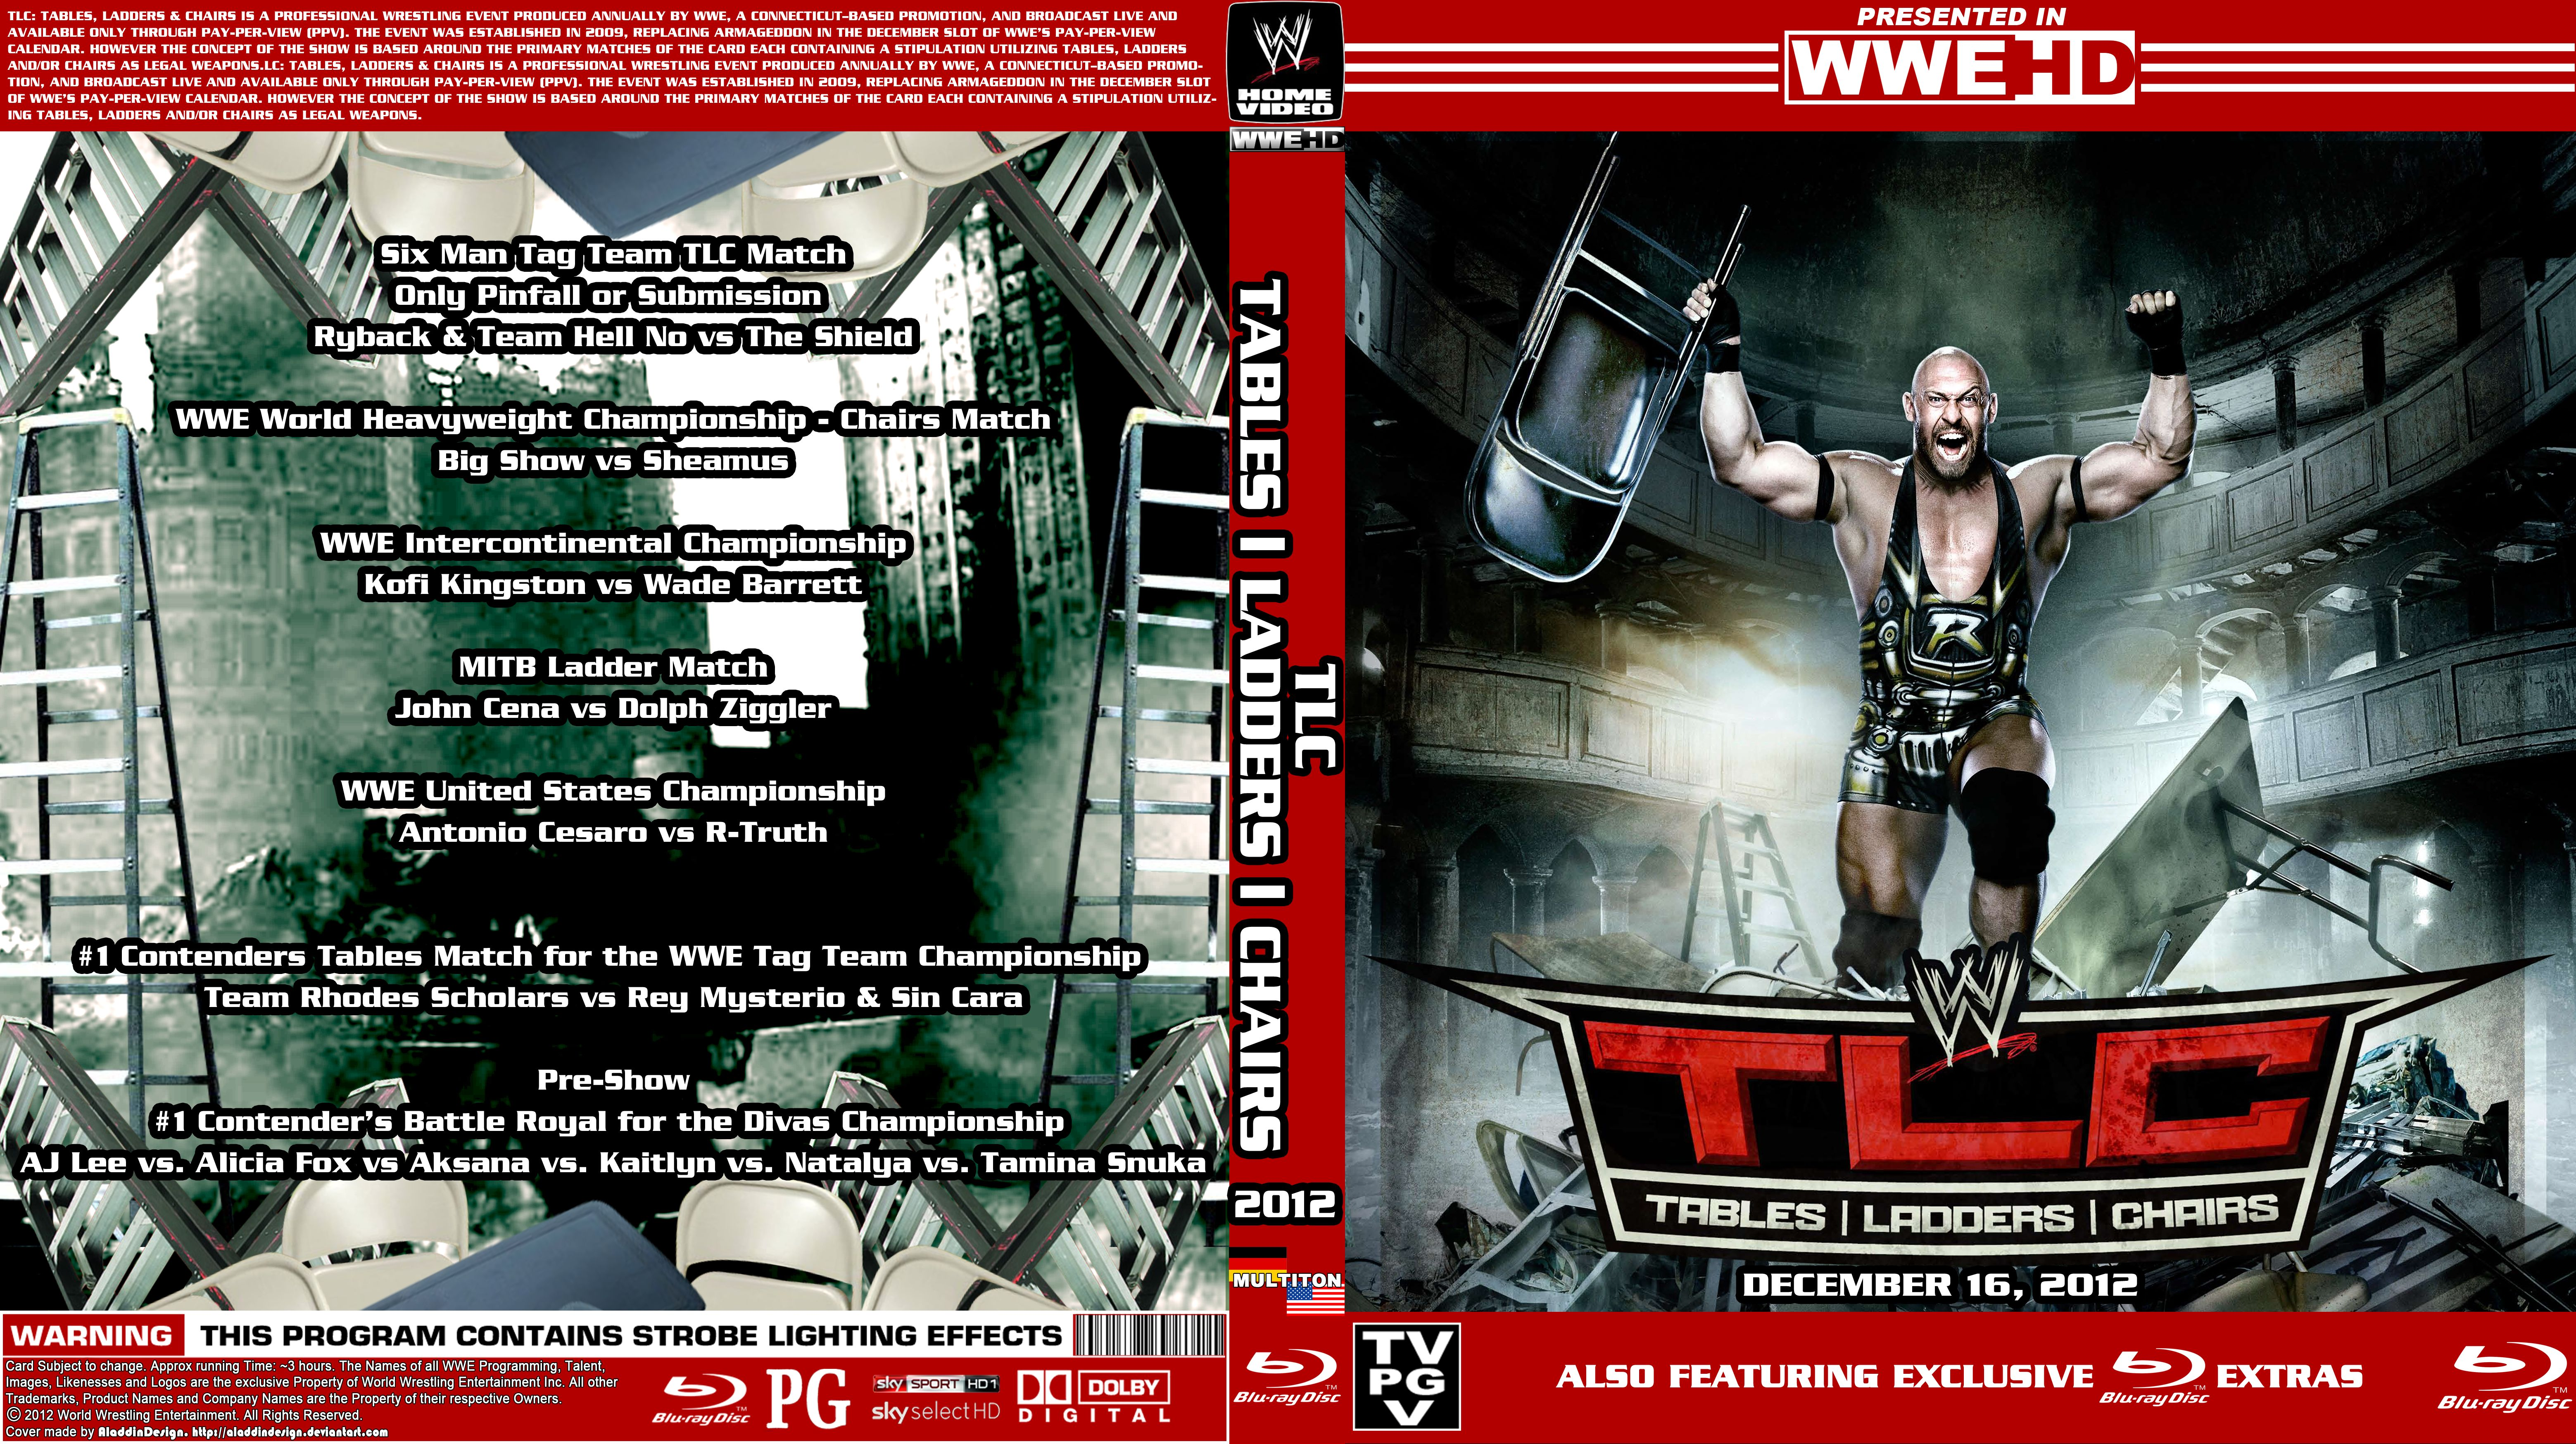 Wwe tables ladders and chairs 2013 poster - Aladdindesign 0 0 Wwe Tlc Tables Ladders Chairs Cover 2012 By Aladdindesign